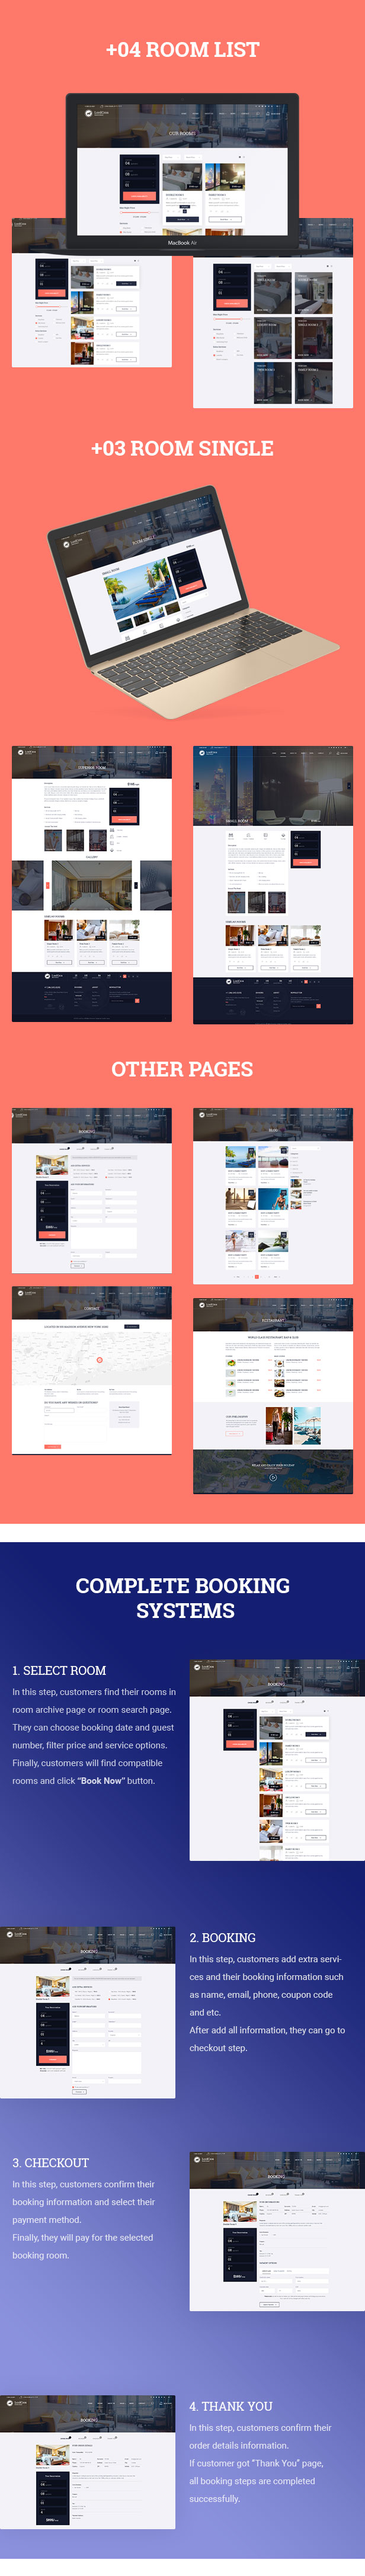 LordCros - Hotel Booking WordPress Theme - 6